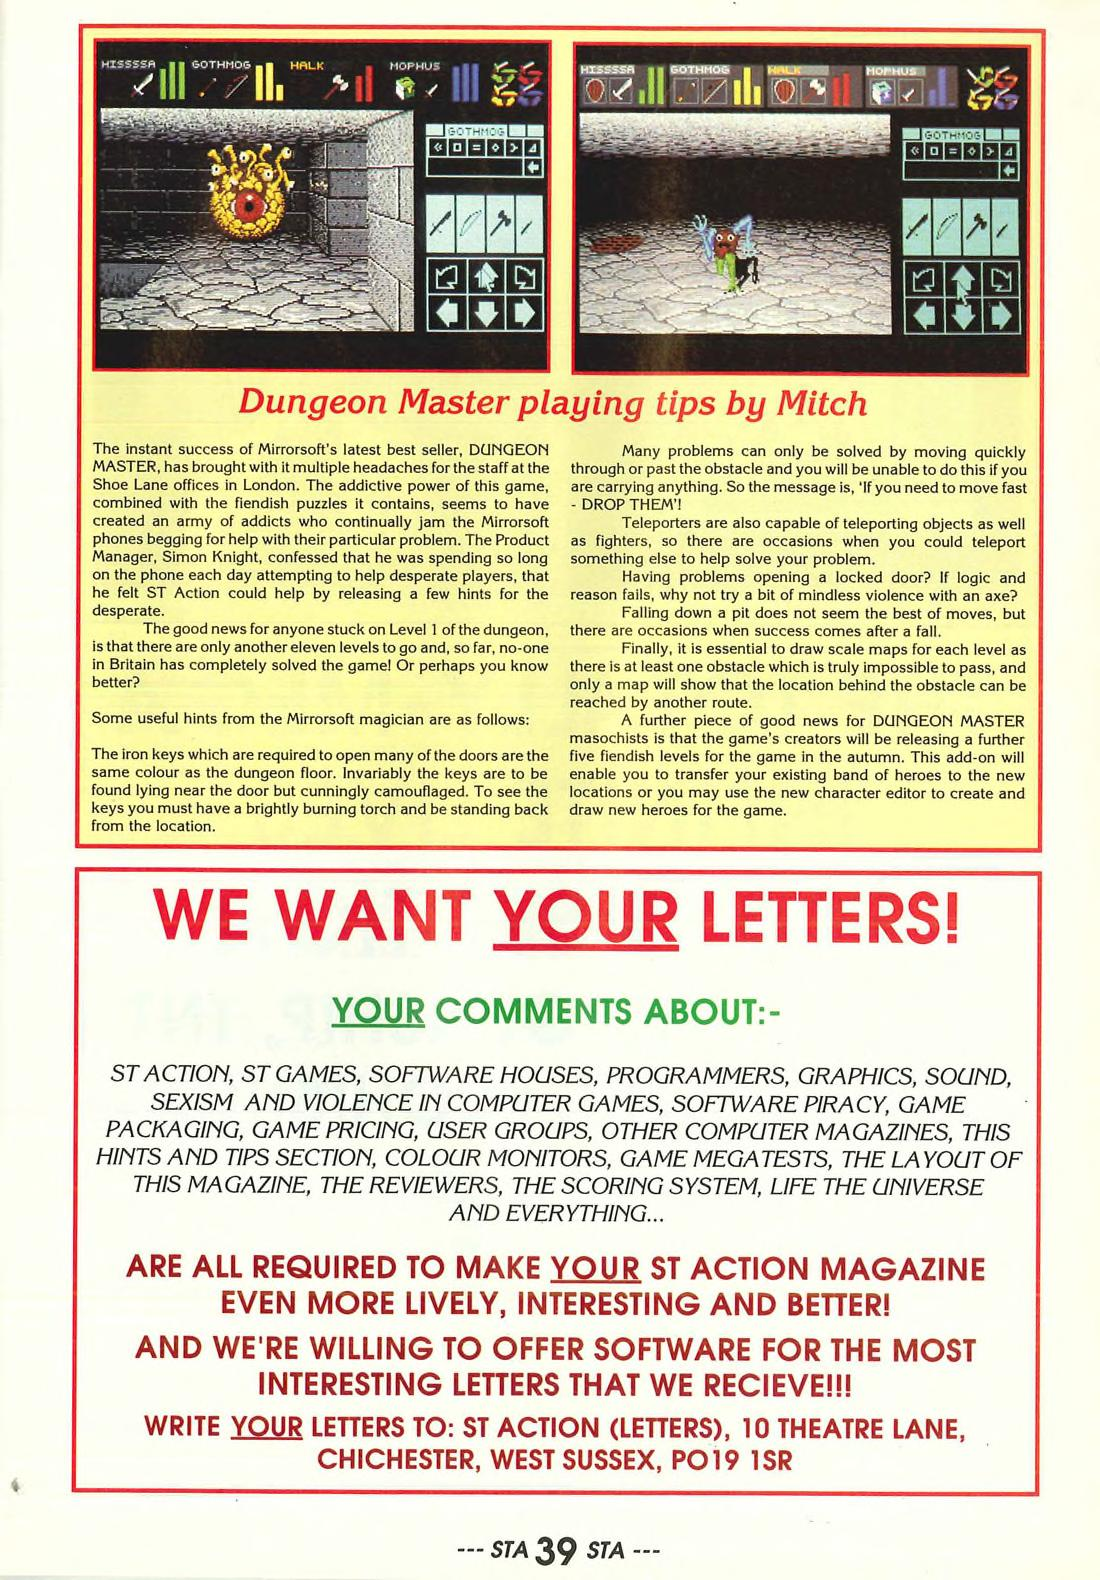 Dungeon Master Hints published in British magazine 'ST Action', Issue #2 June 1988, Page 39